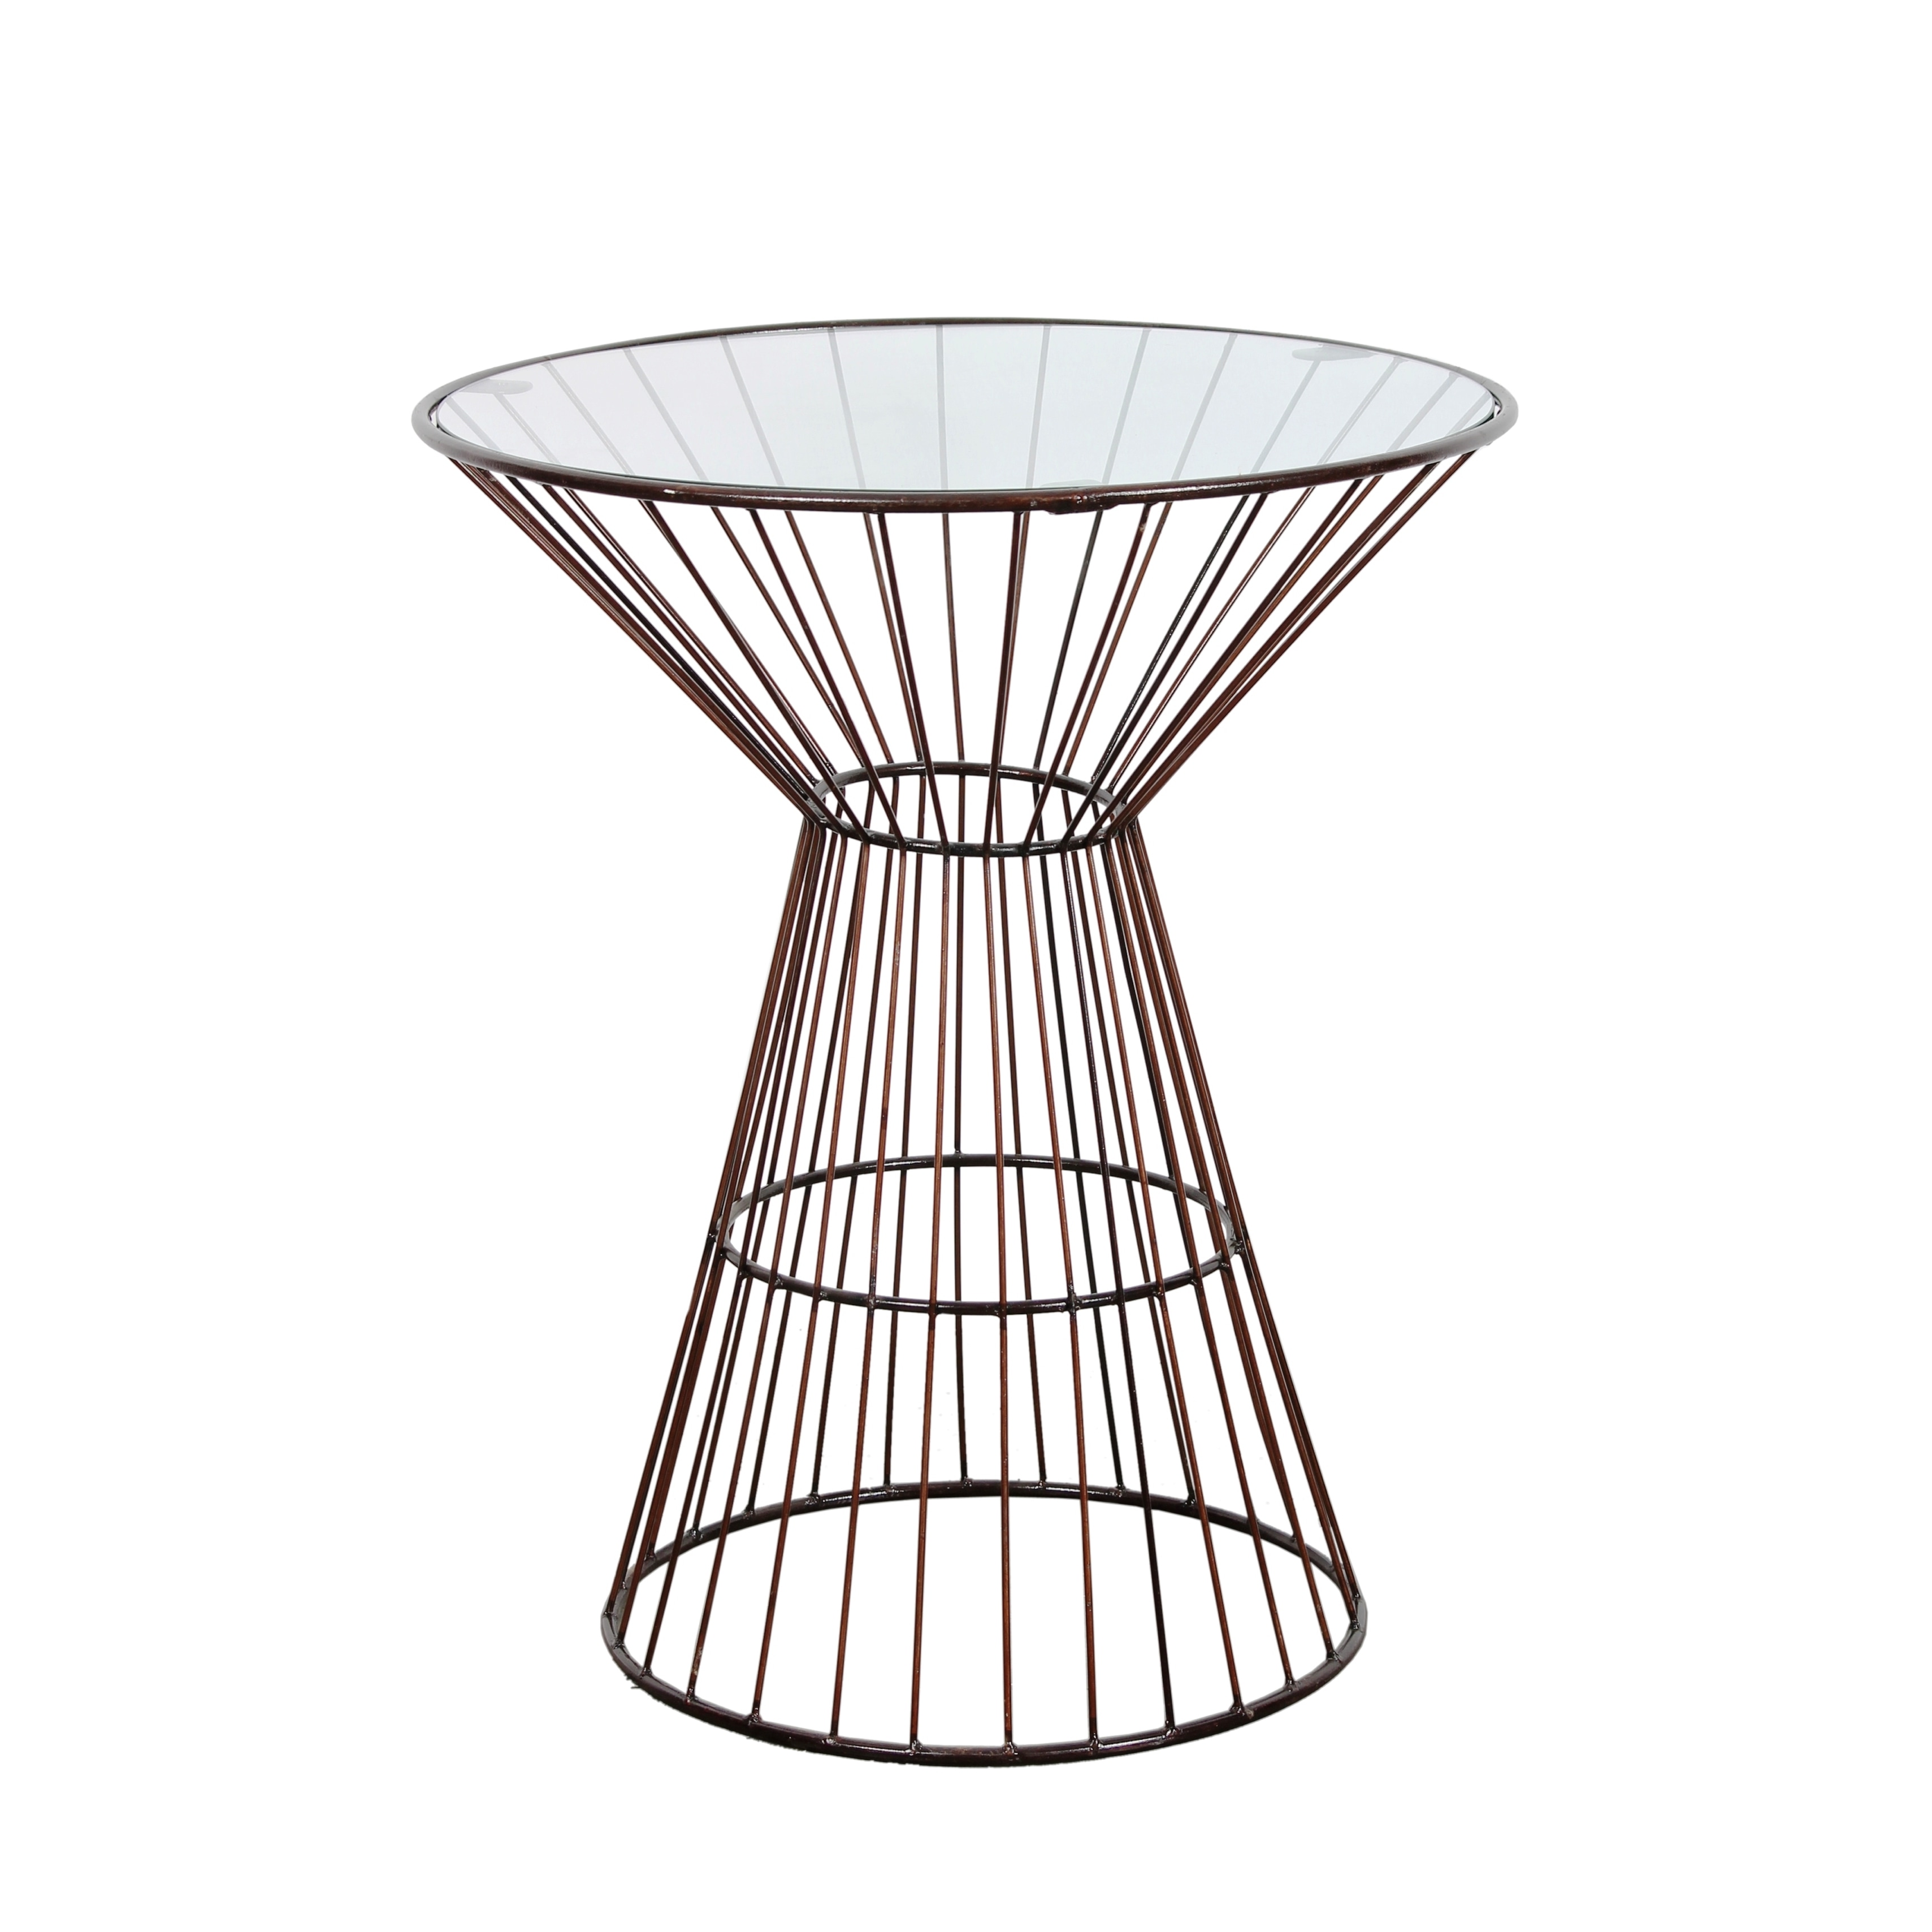 bronze wire frame tall side table with glass top outdoor accent free shipping today drawers ceiling chandelier designer white coffee target futon mattress small drop leaf kitchen